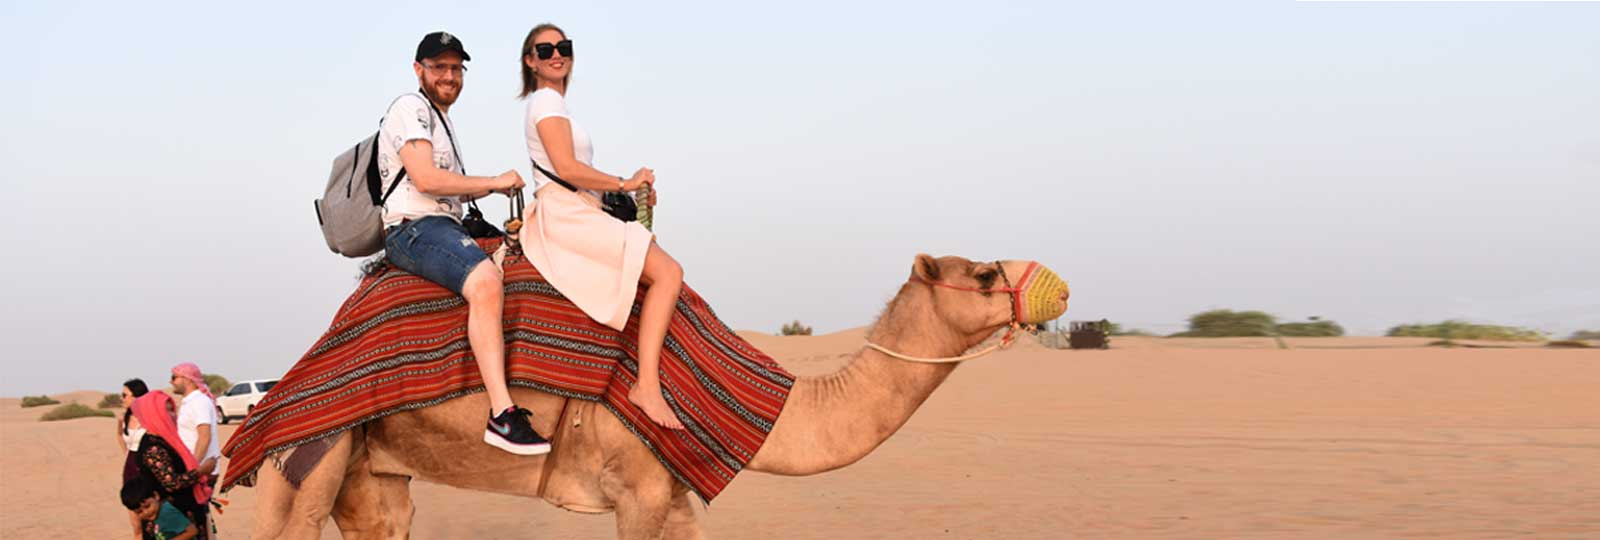 Camel-Desert-Safari-Dubai-Evening